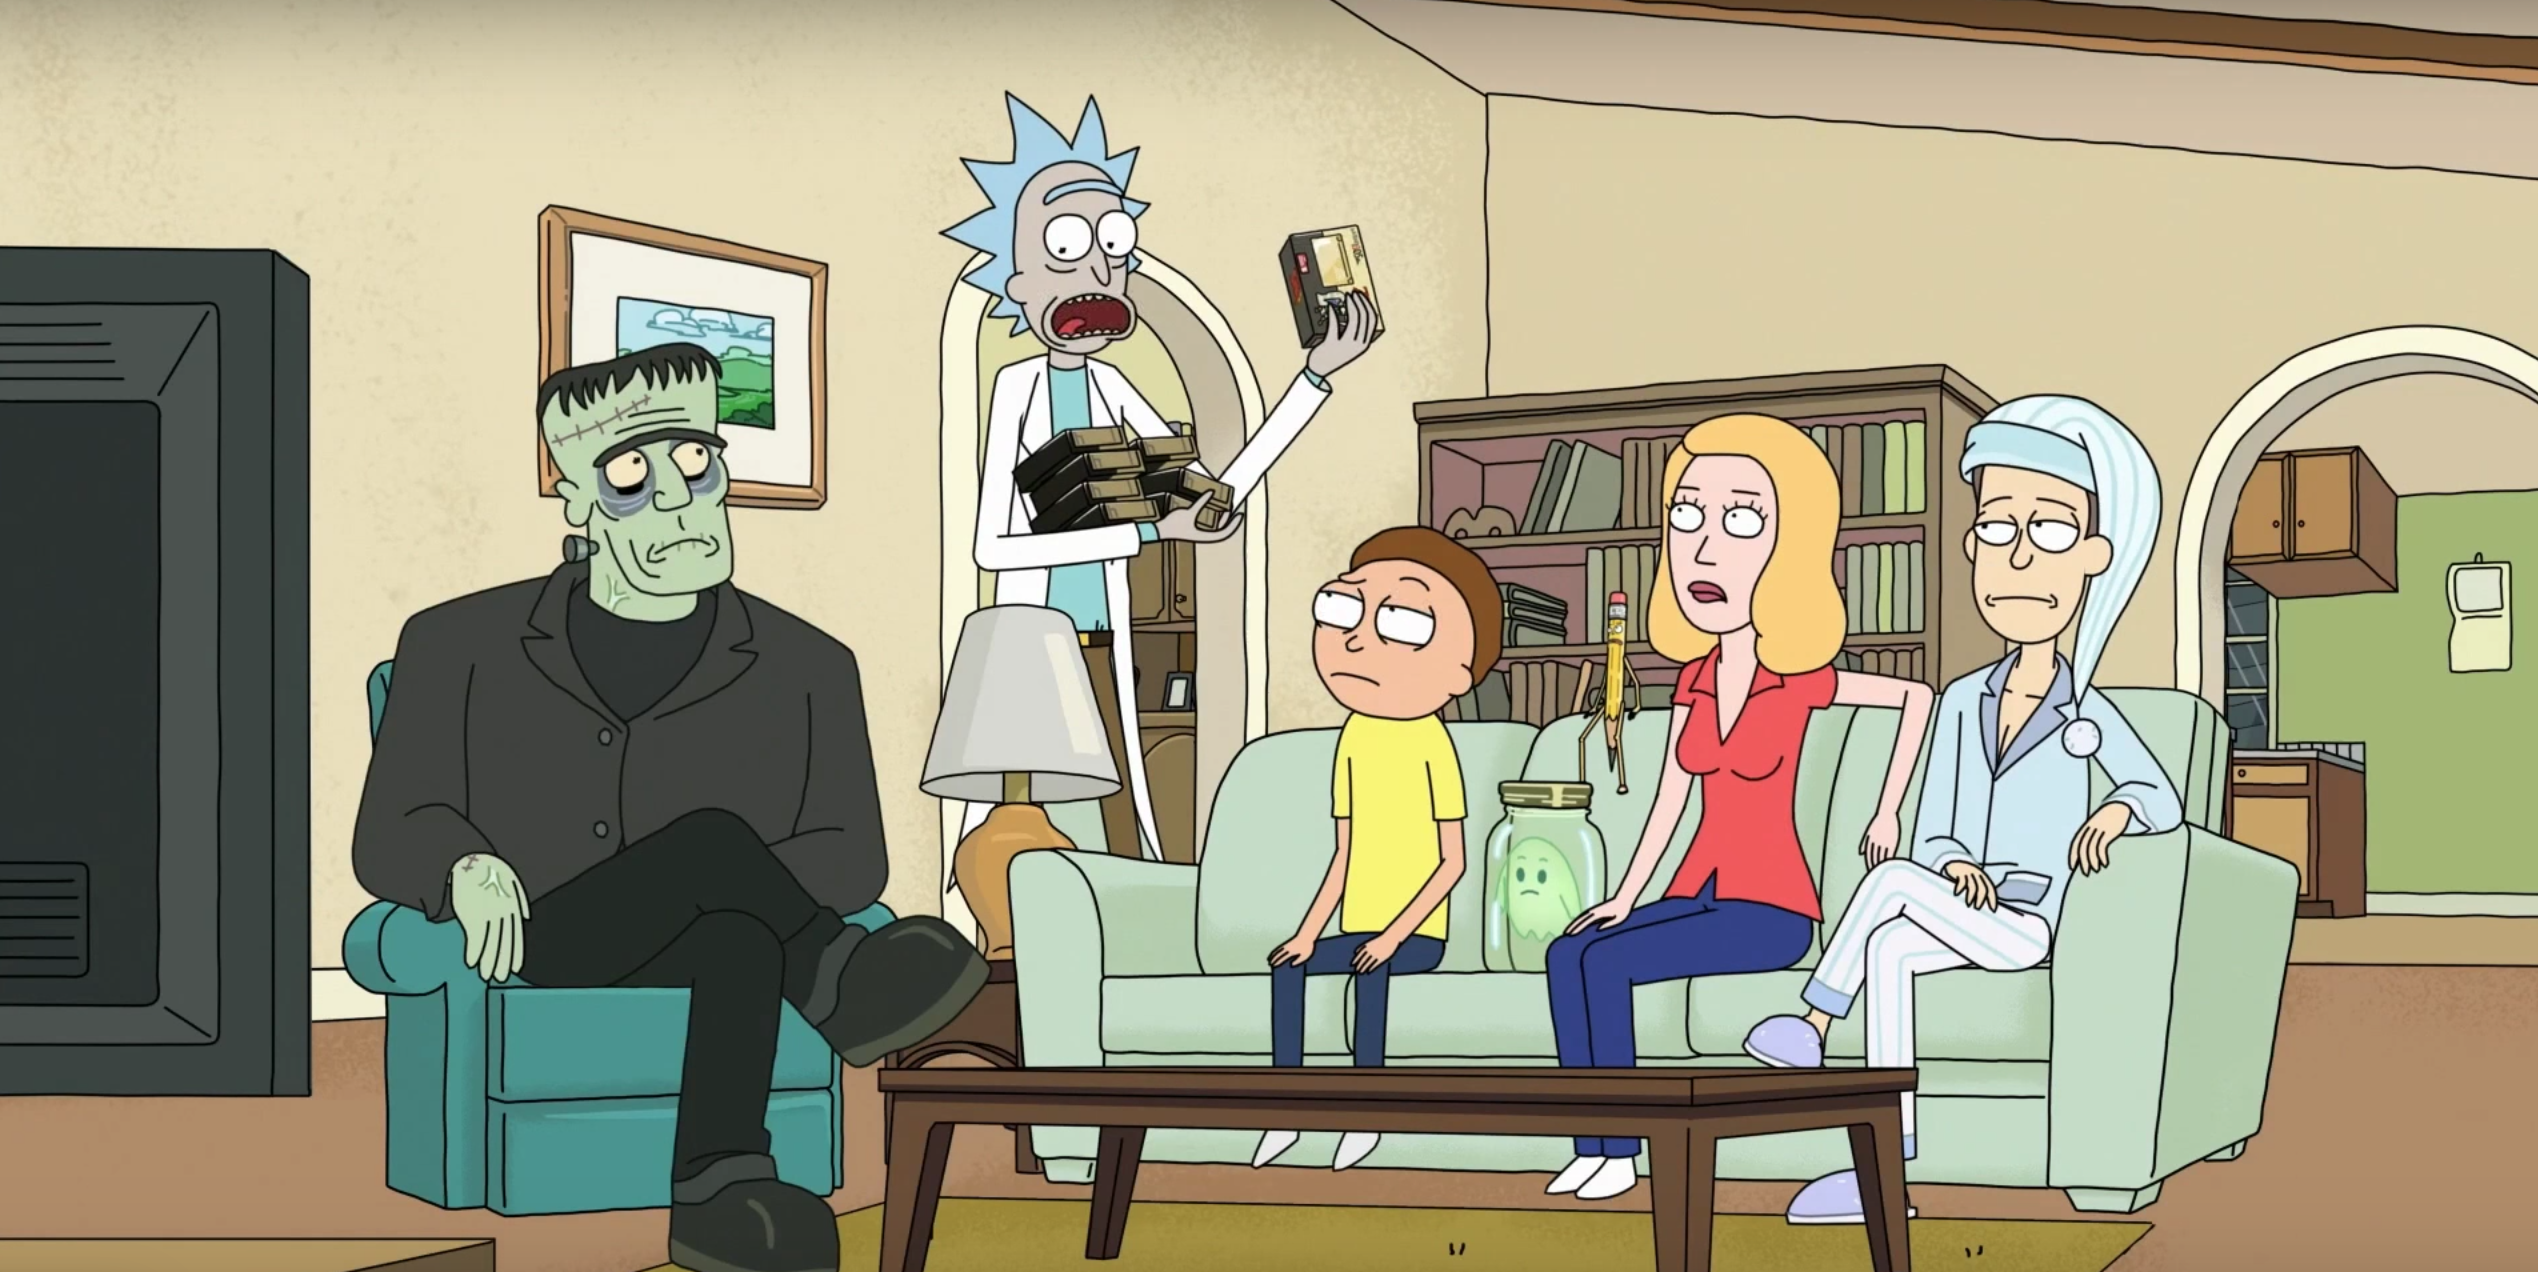 Rick and Morty co-creator is selling a signed $1,000